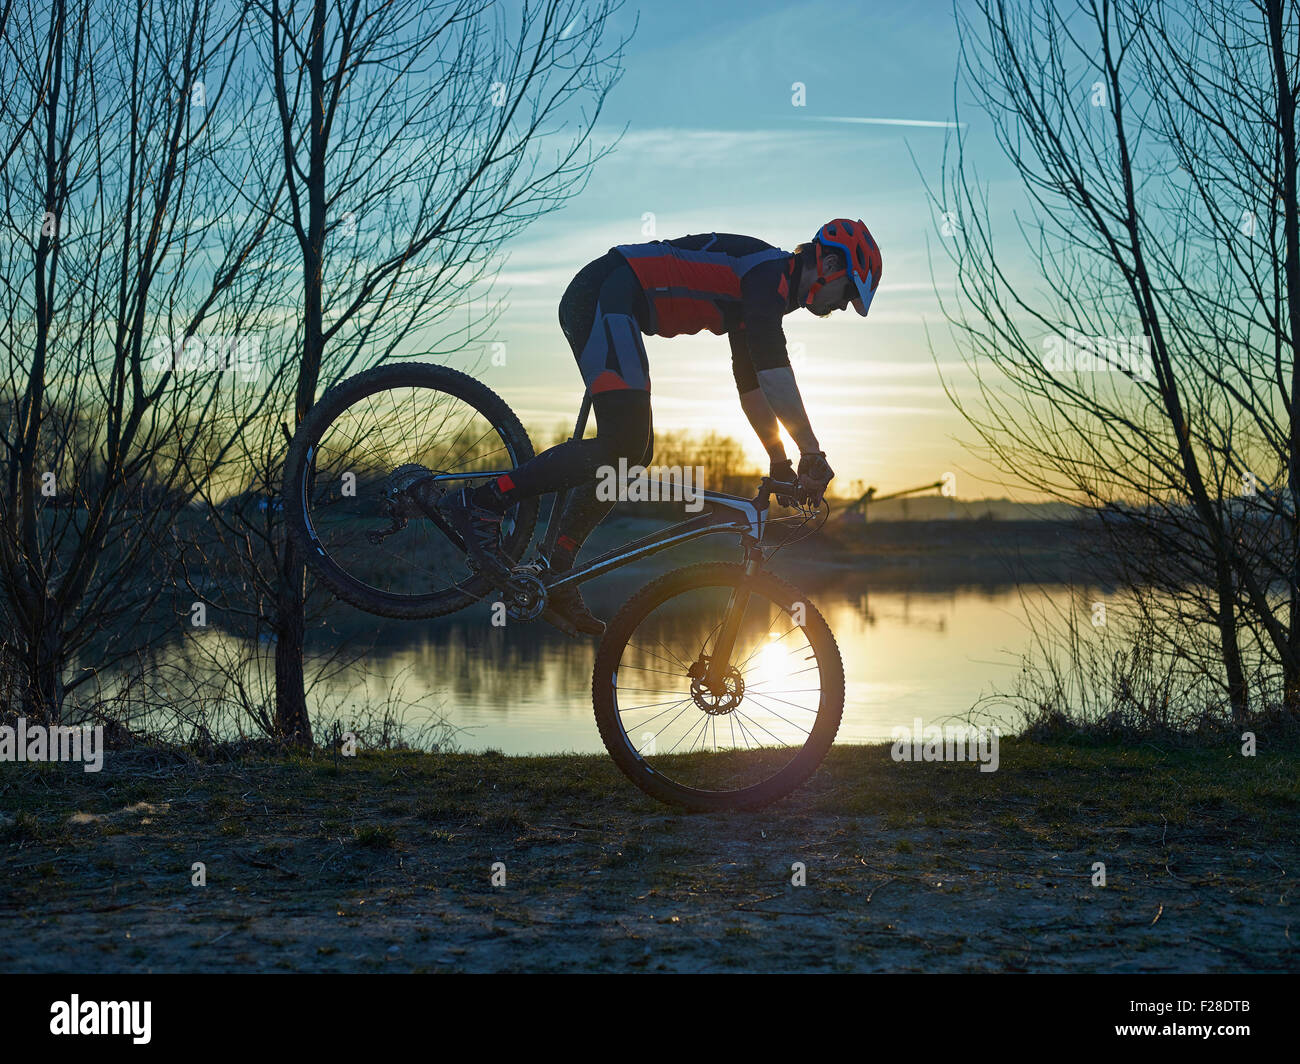 Mature man doing stunts on mountain bike during sunset, Bavaria, Germany - Stock Image